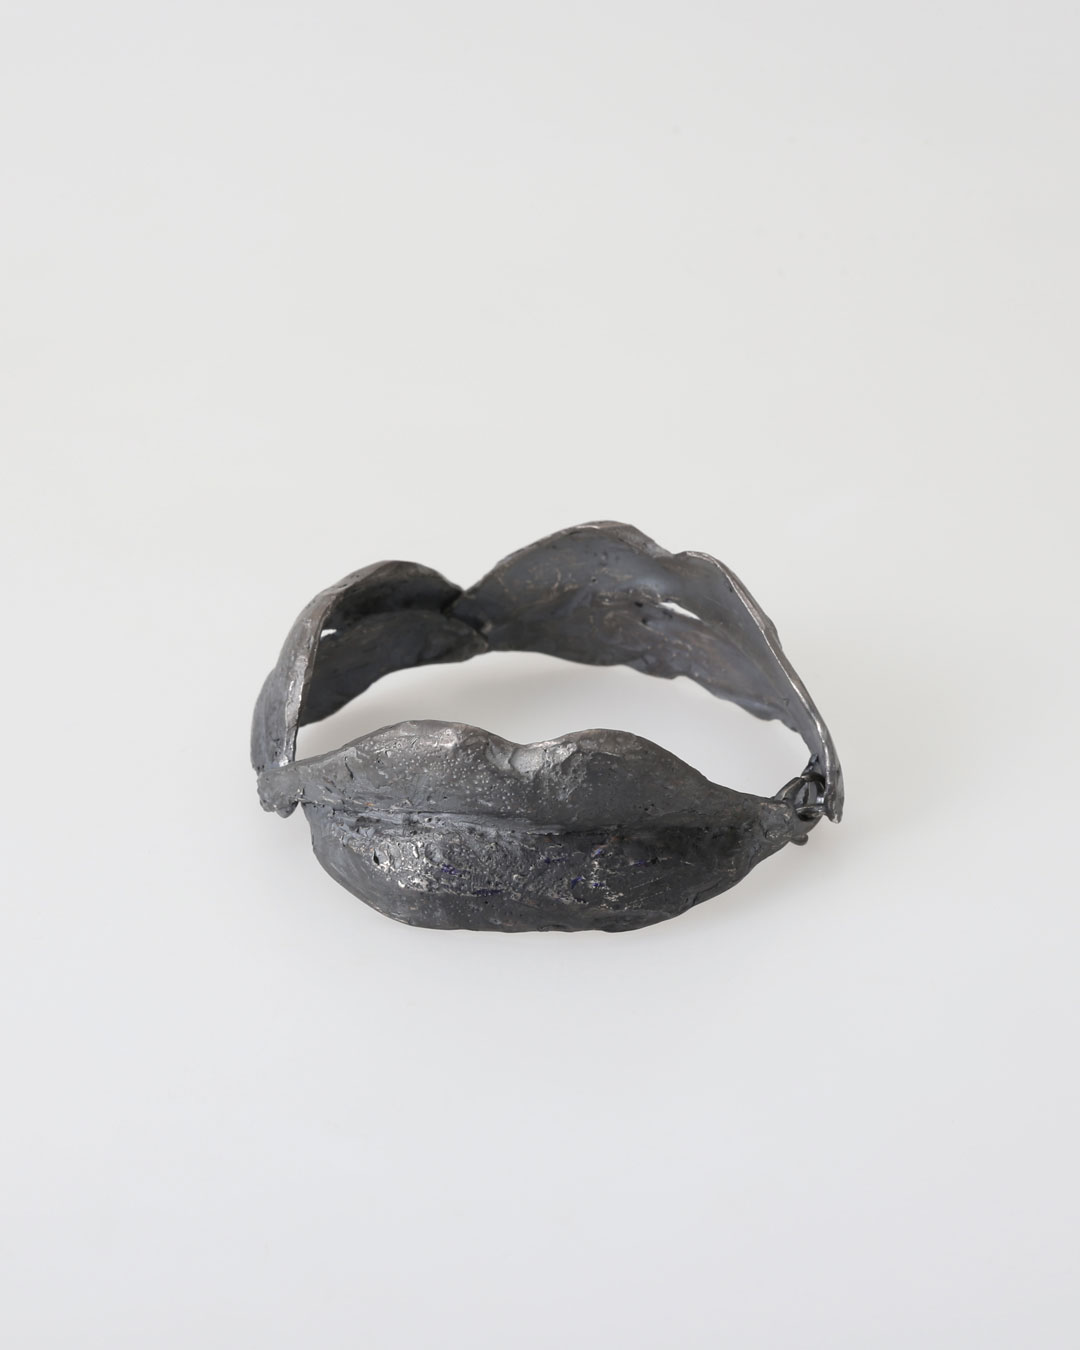 Juliane Brandes, untitled, 2017, bracelet; silver, ruthenium, 70 x 30 mm, €2430